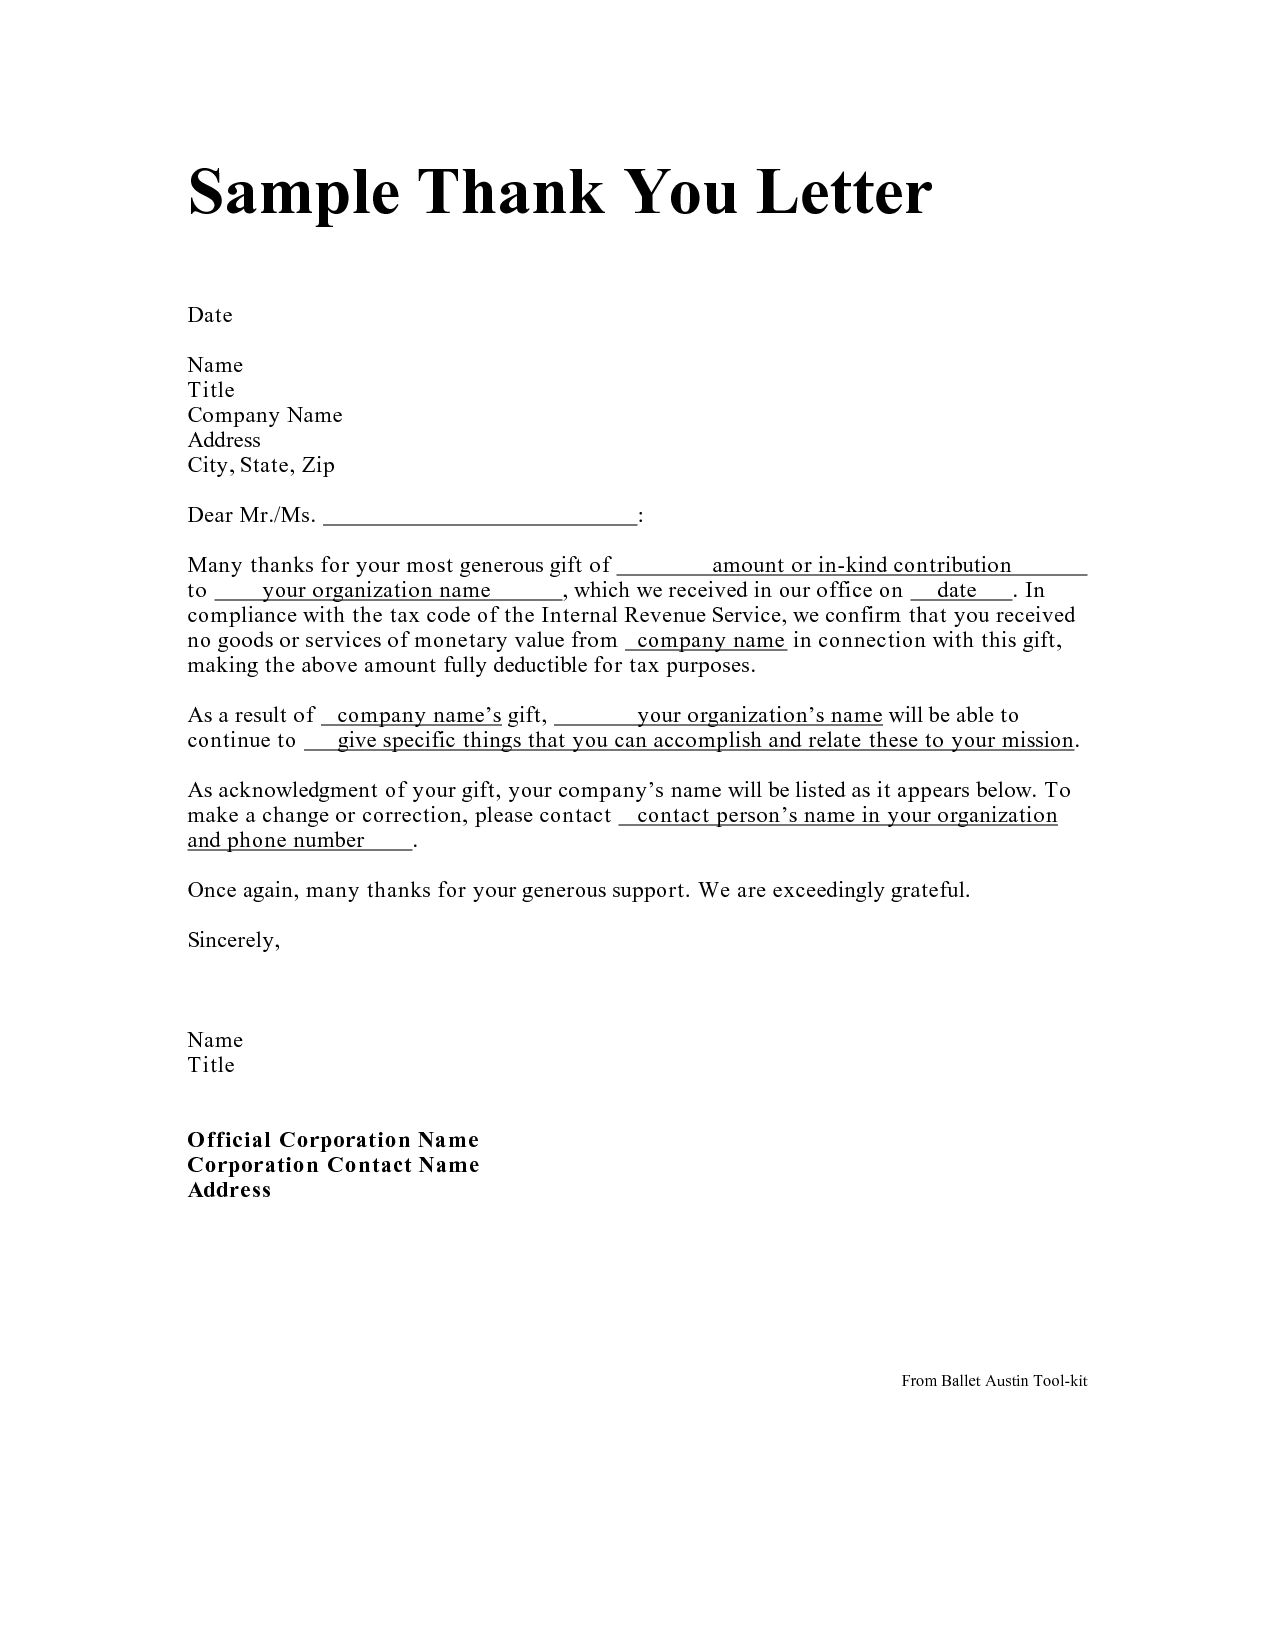 Personal thank you letter personal thank you letter samples personal thank you letter personal thank you letter samples writing thank you notes thank you note examples thecheapjerseys